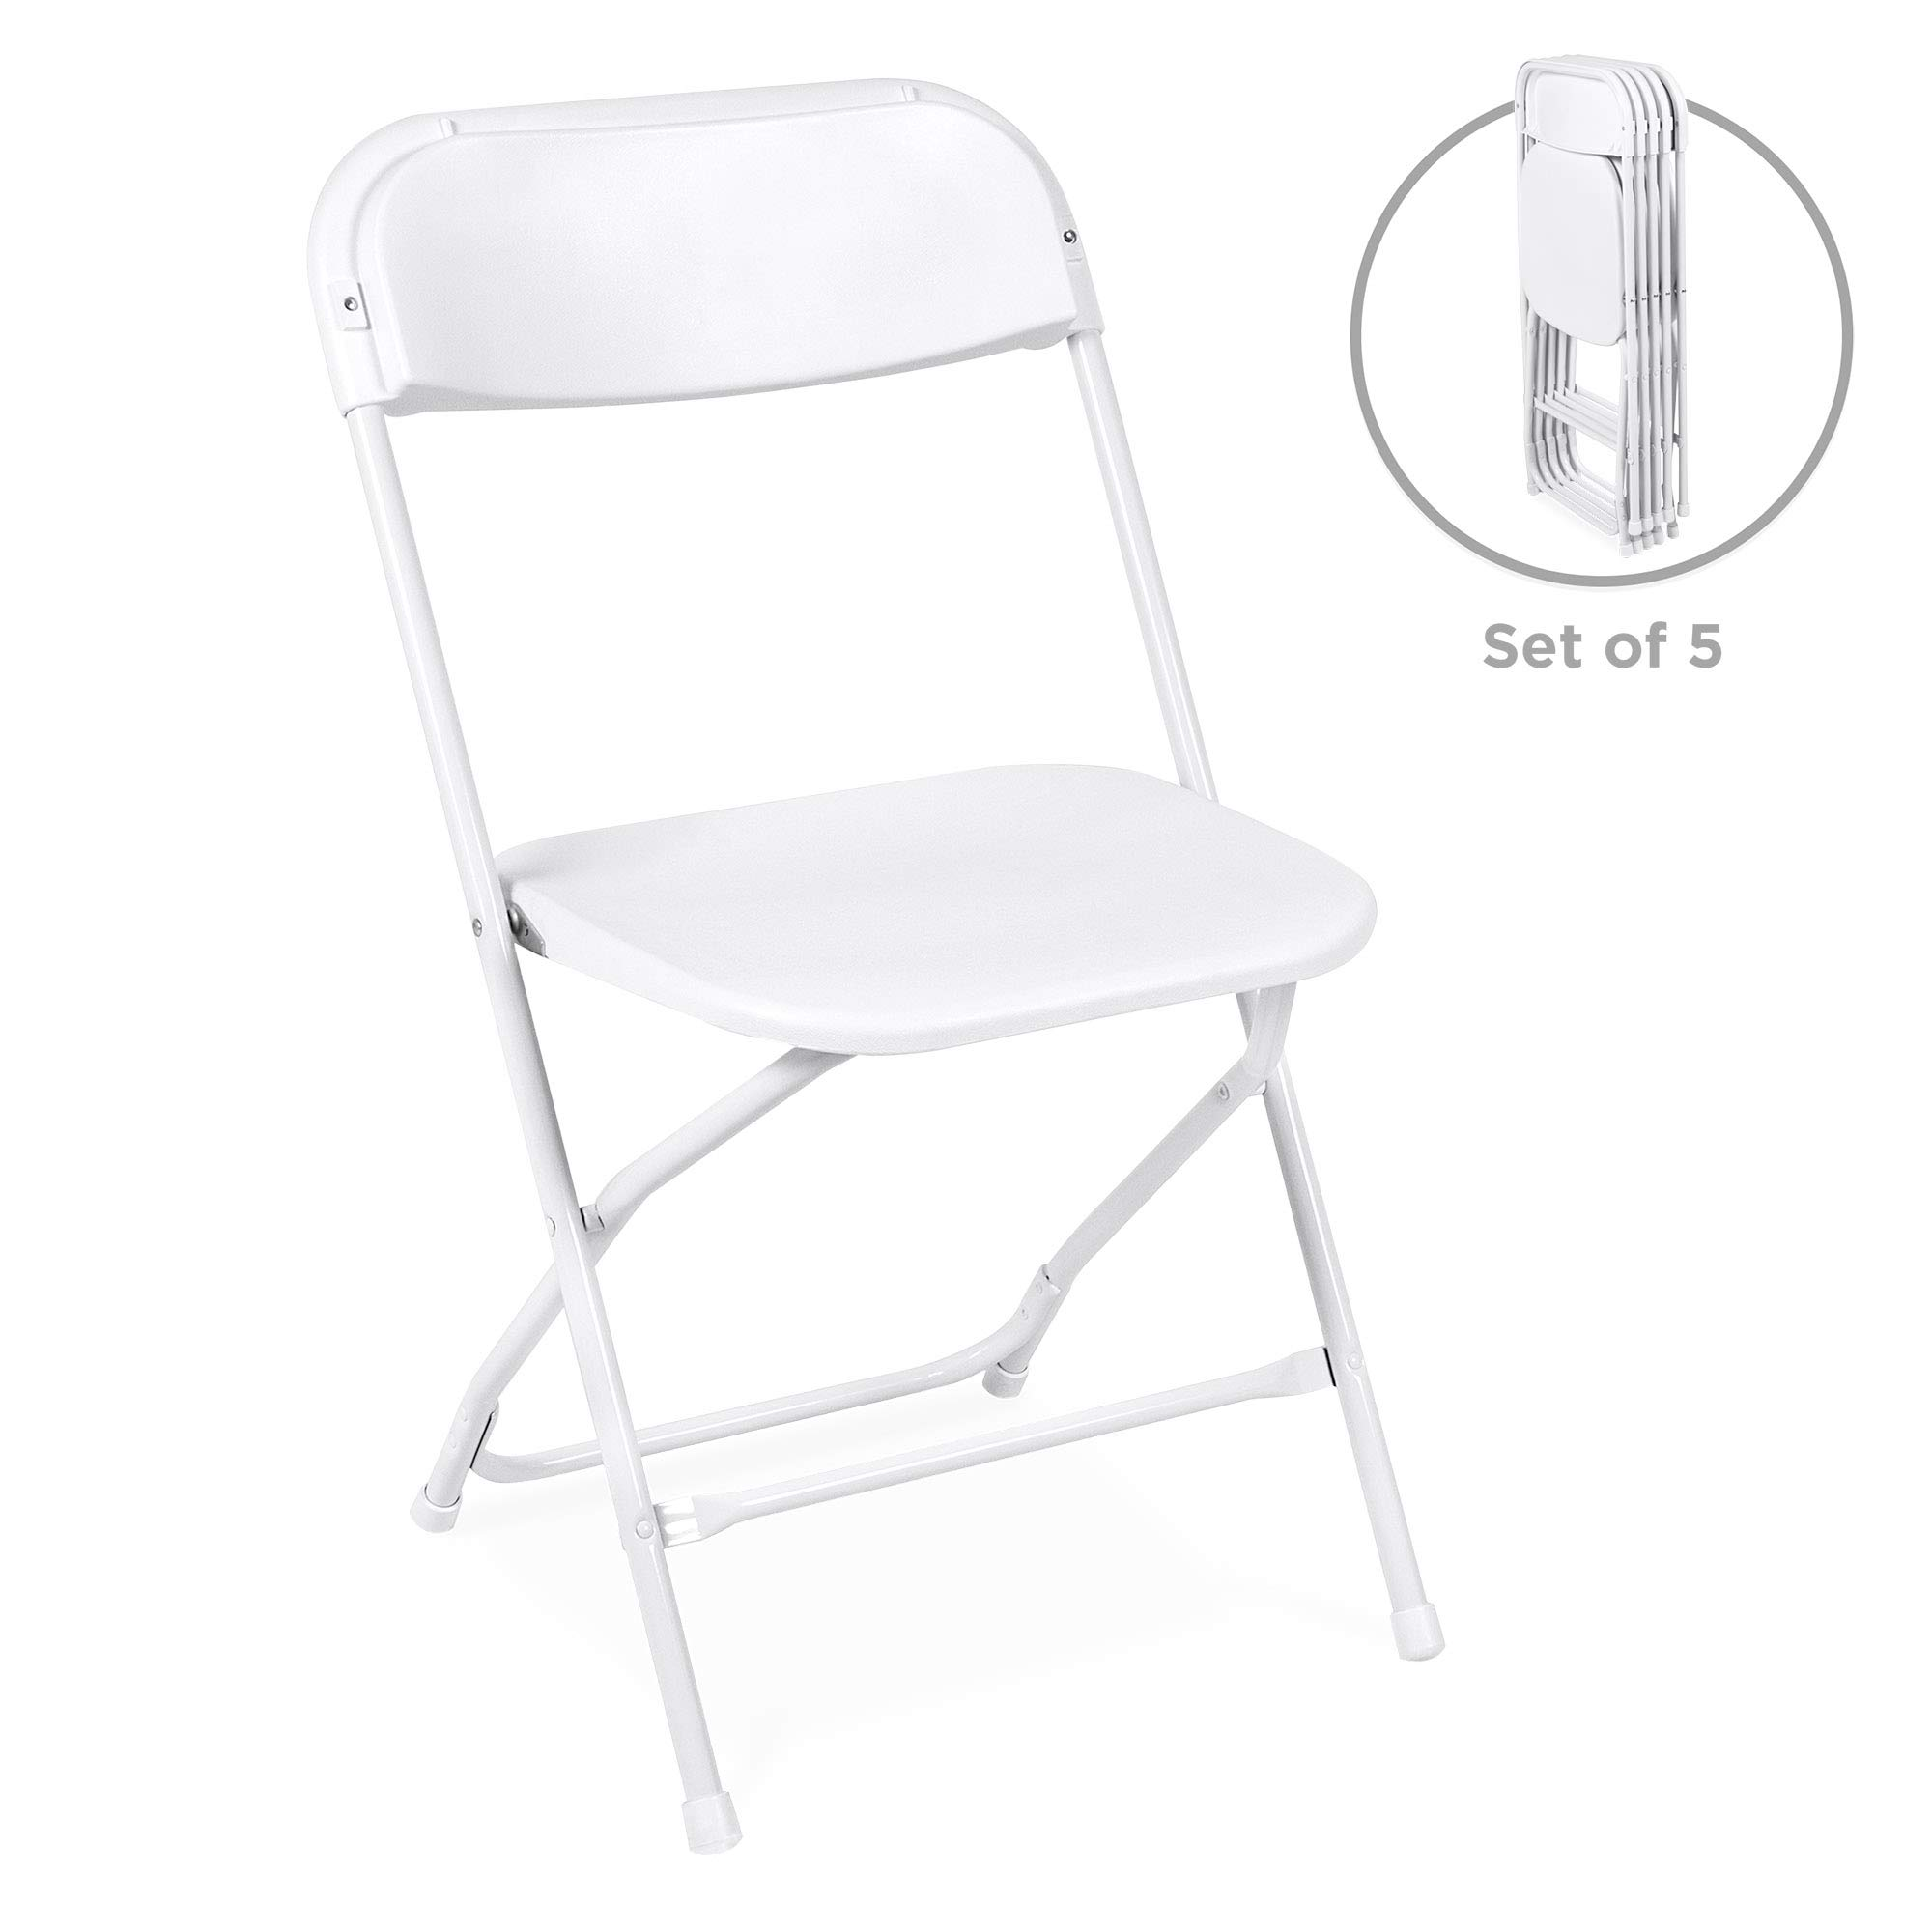 Best Choice Products Set of 5 Indoor Outdoor Portable Stackable Lightweight Plastic Folding Chairs for Events, Parties - White by Best Choice Products